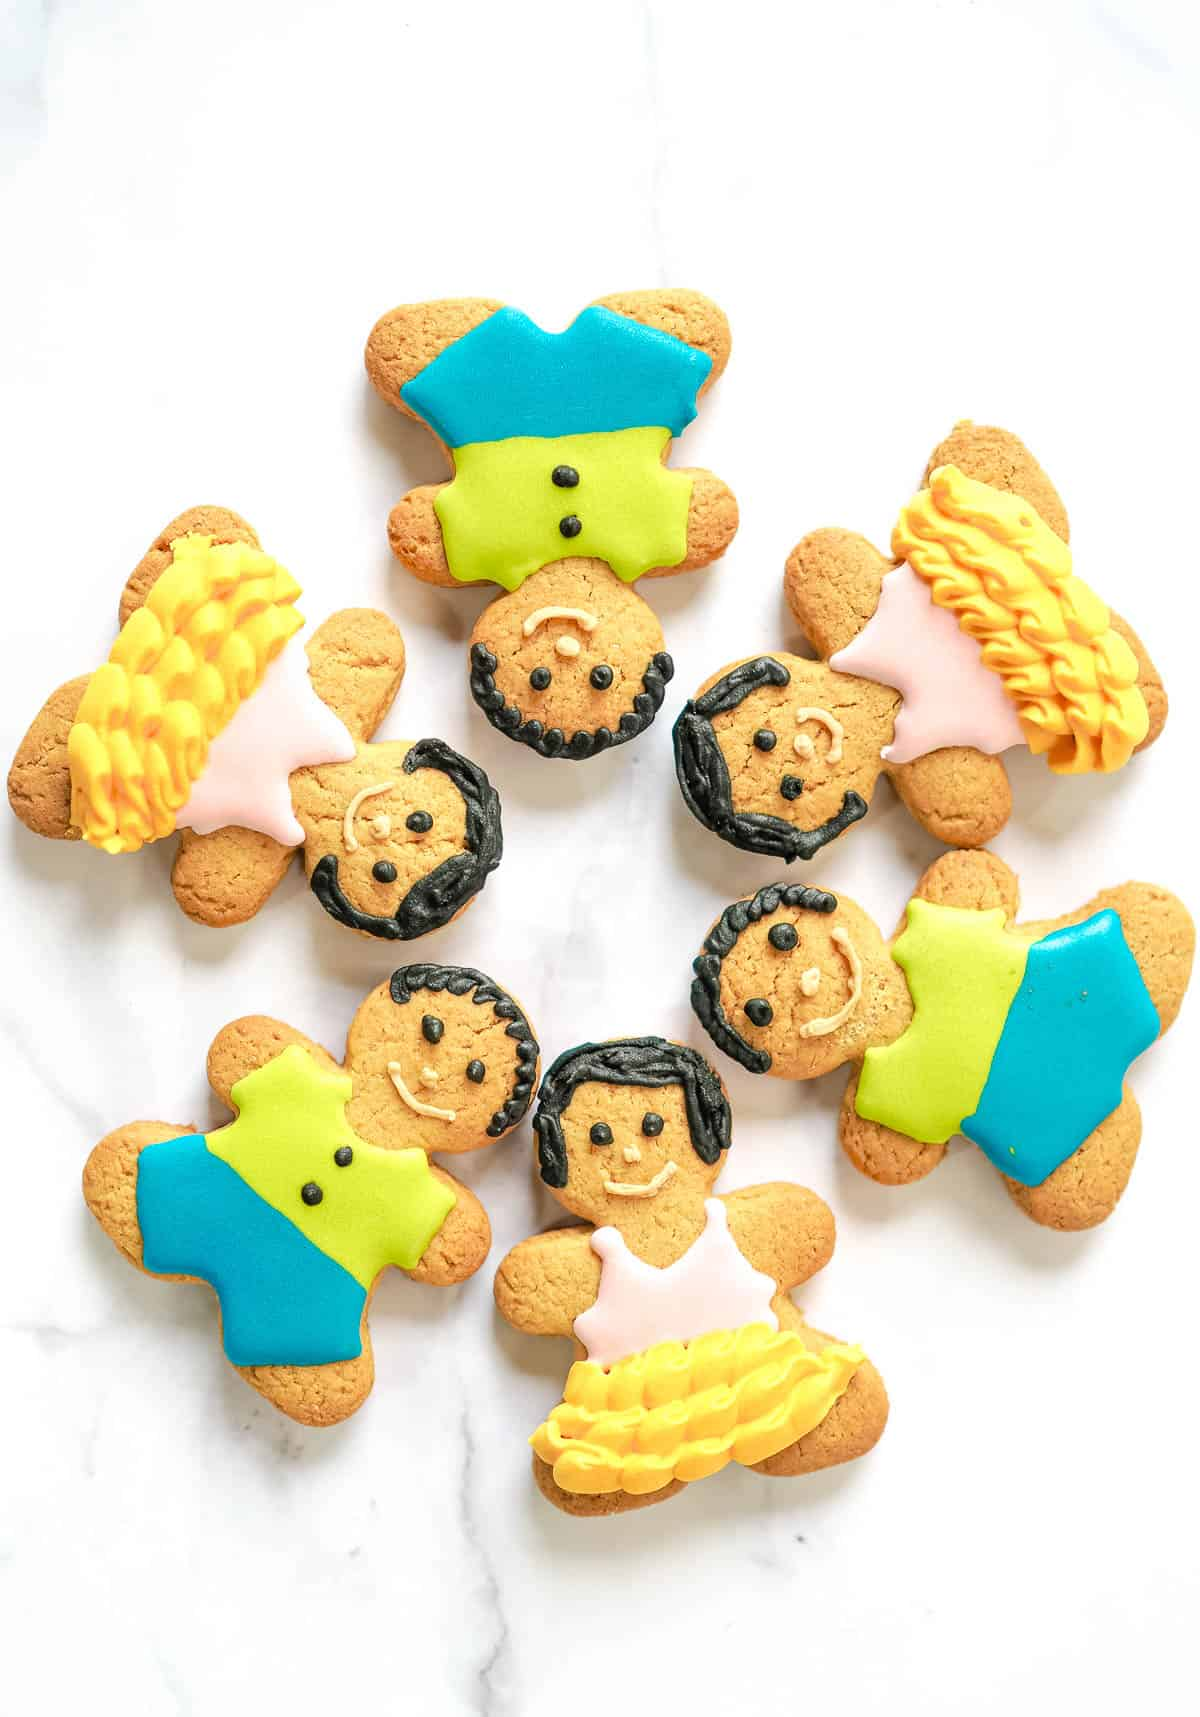 Gingerbread cookies decorated into boys and girls. A total of 6 cookies arranged into a circle